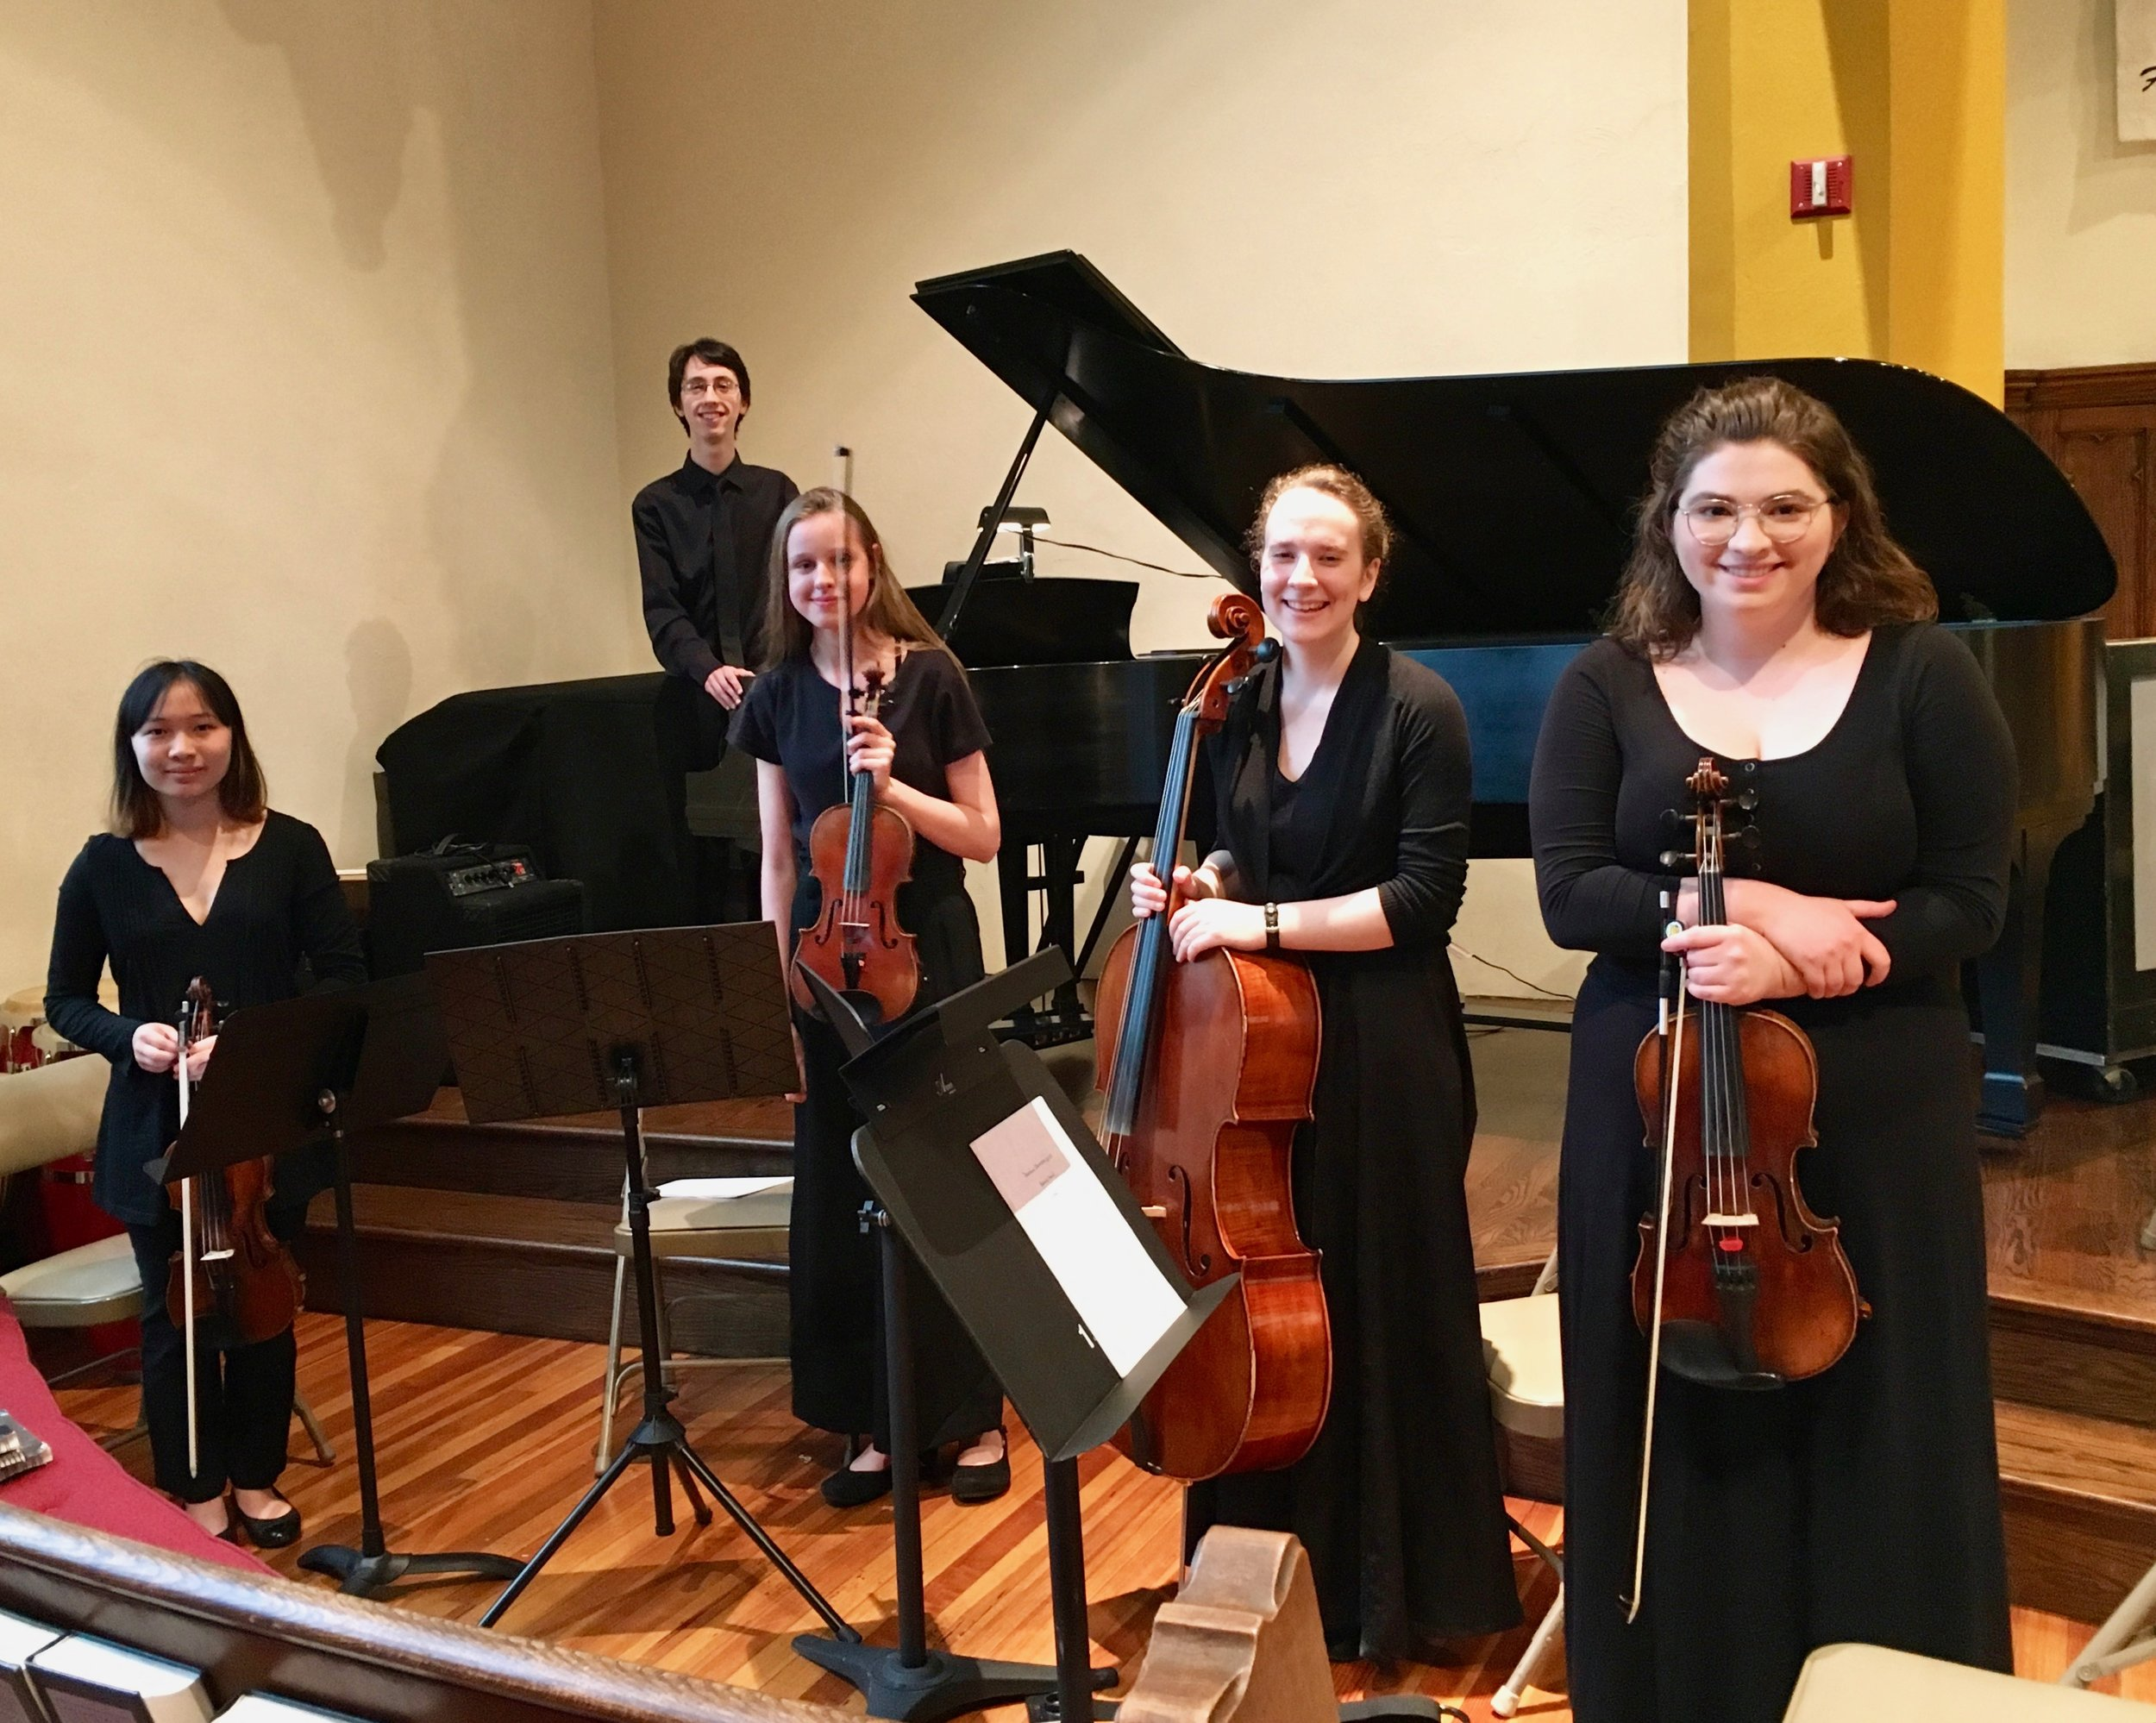 Chamber Orchestra of Pittsburgh - Friday nights - dates TBAYC2 groups are invited to perform pre-concert for the Chamber Orchestra of Pittsburgh at First Unitarian Church in Shadyside.